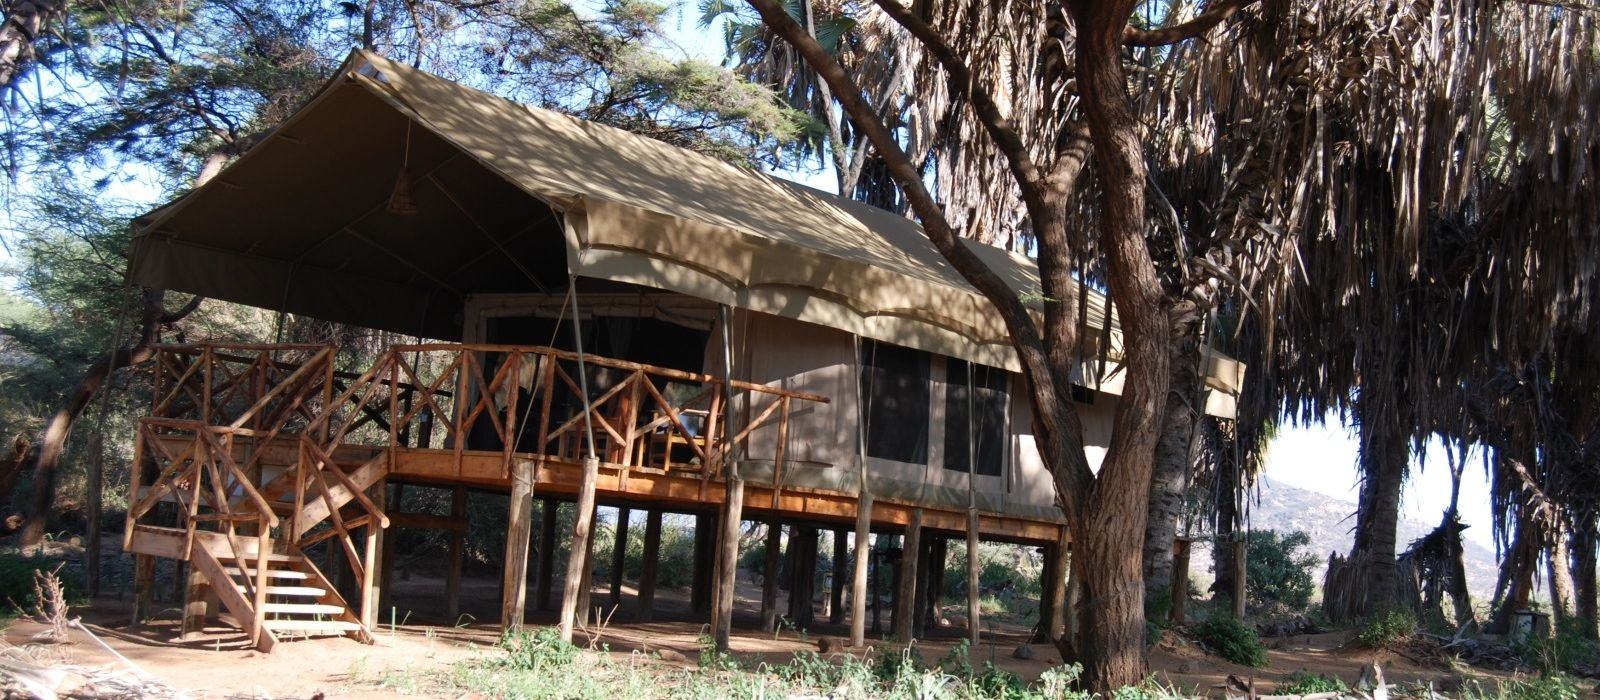 Hotel Elephant Bedroom Camp Kenia